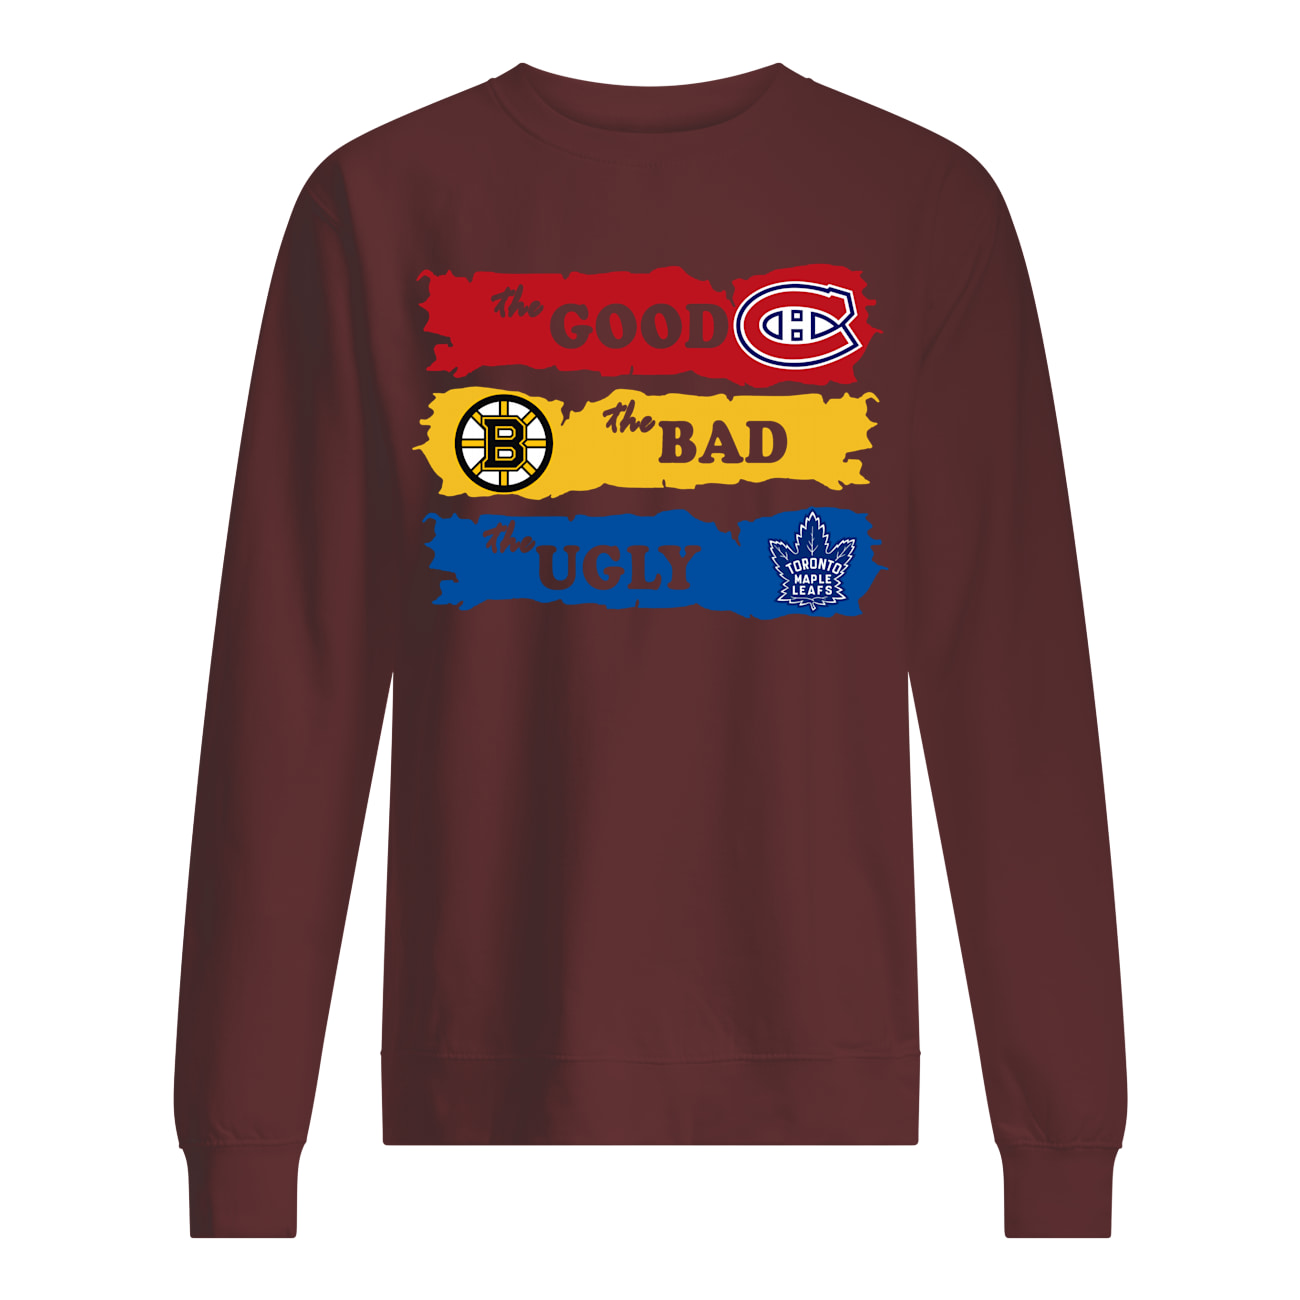 The good montreal canadiens the bad boston bruins the ugly toronto maple leafs sweatshirt